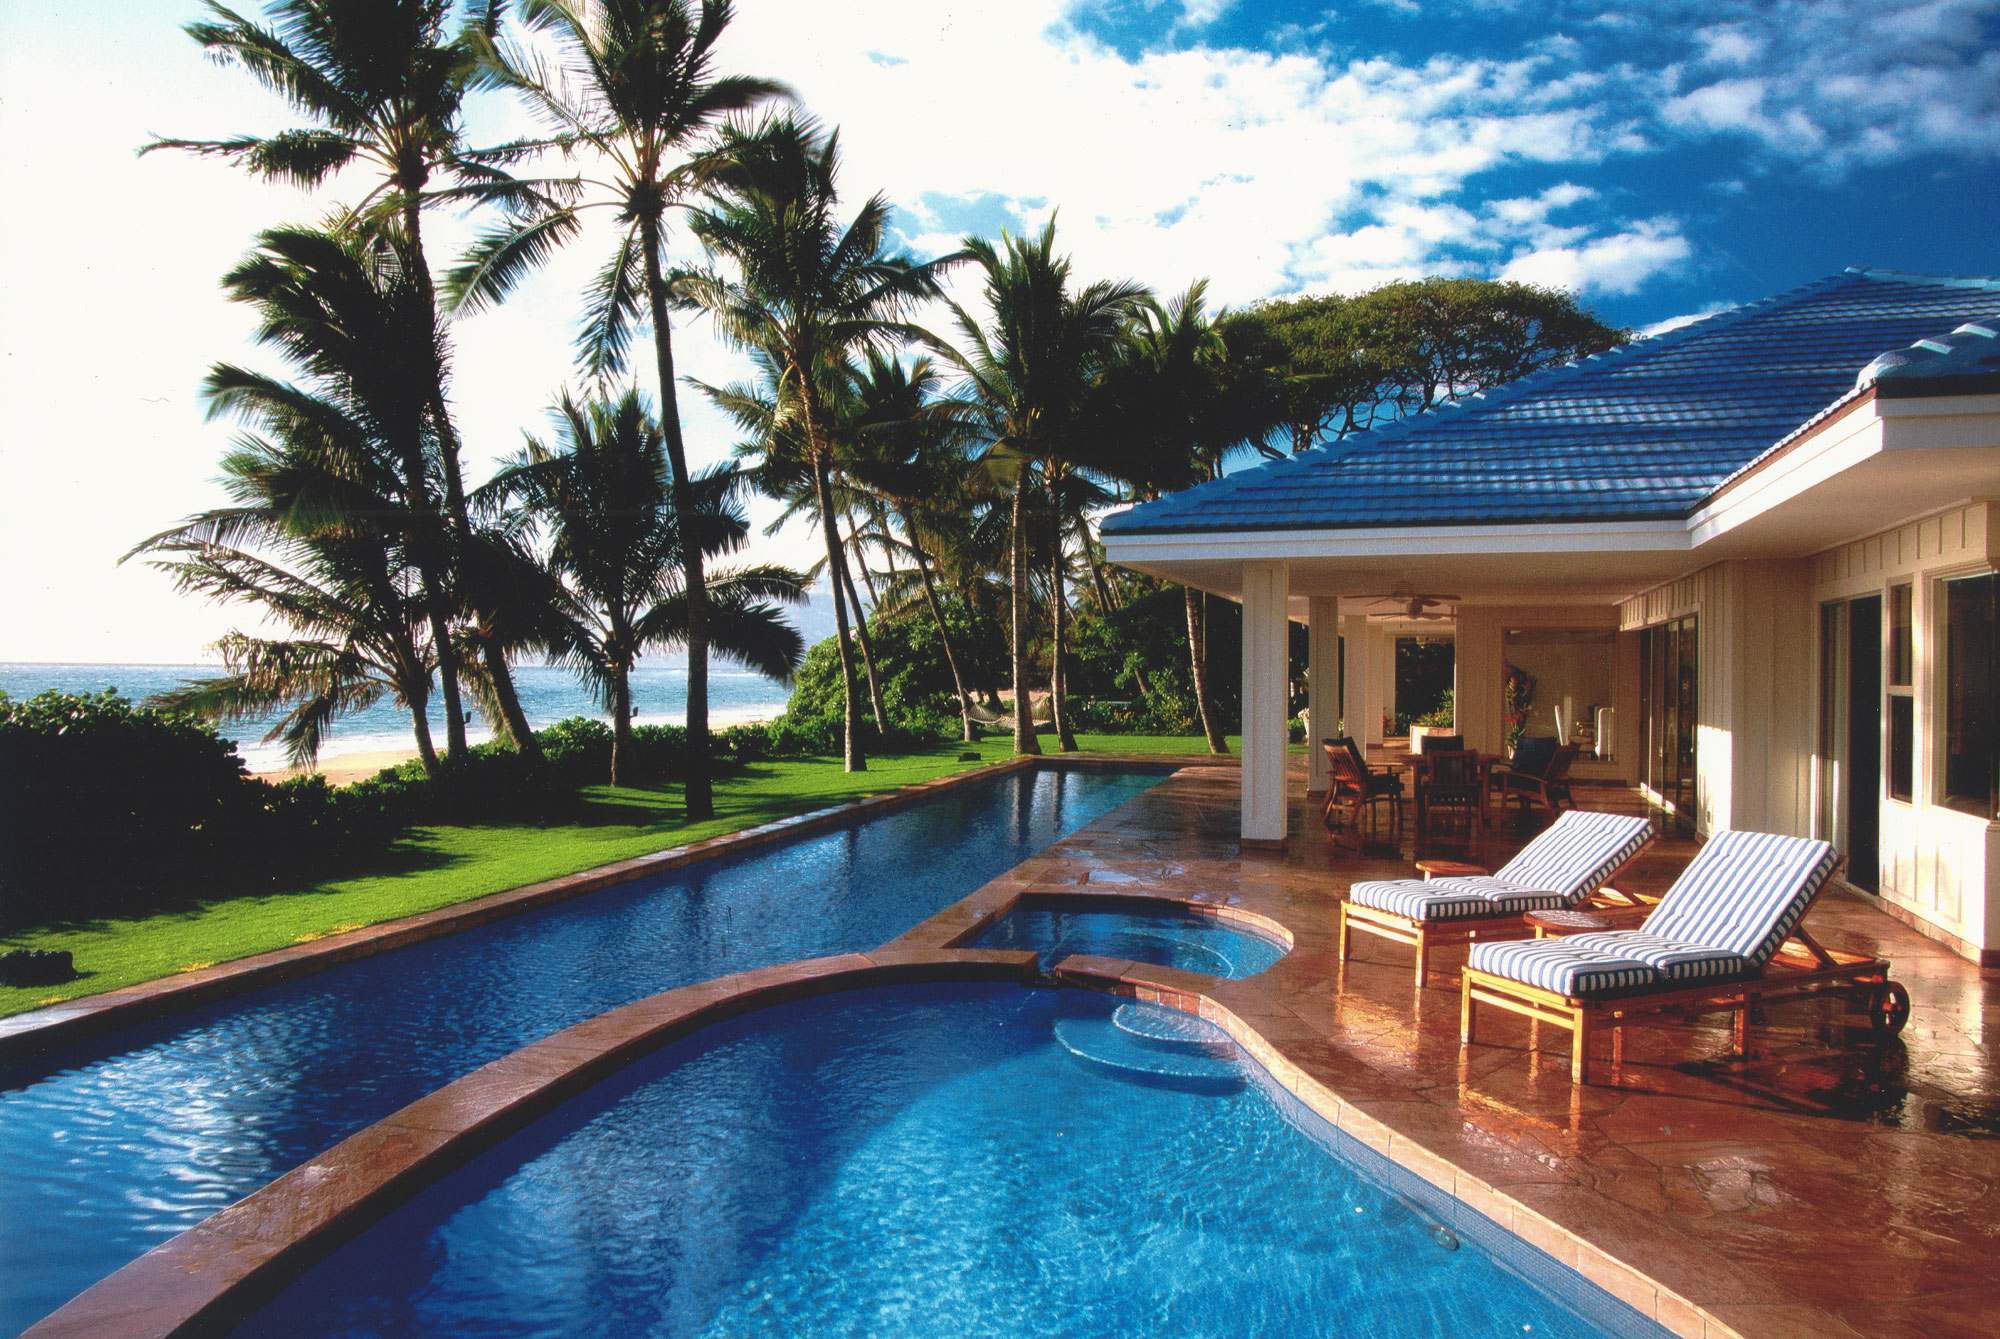 Kauai Luxury Vacation Rentals